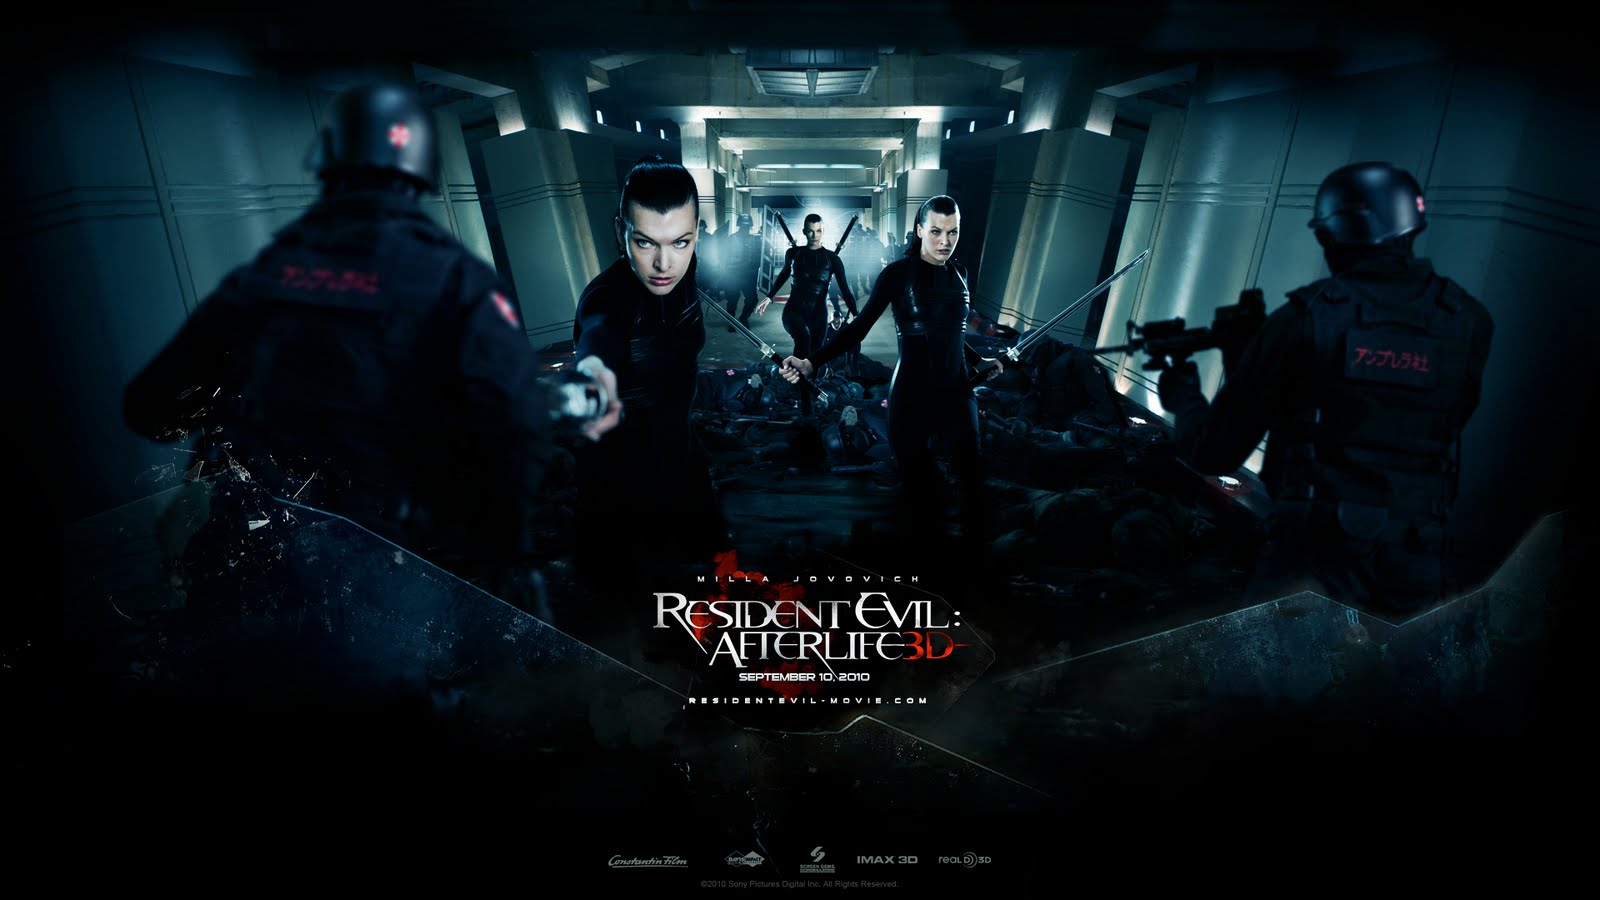 Resident evil afterlife hd wallpaper ushasrees blog resident evil afterlife hd wallpaper voltagebd Images